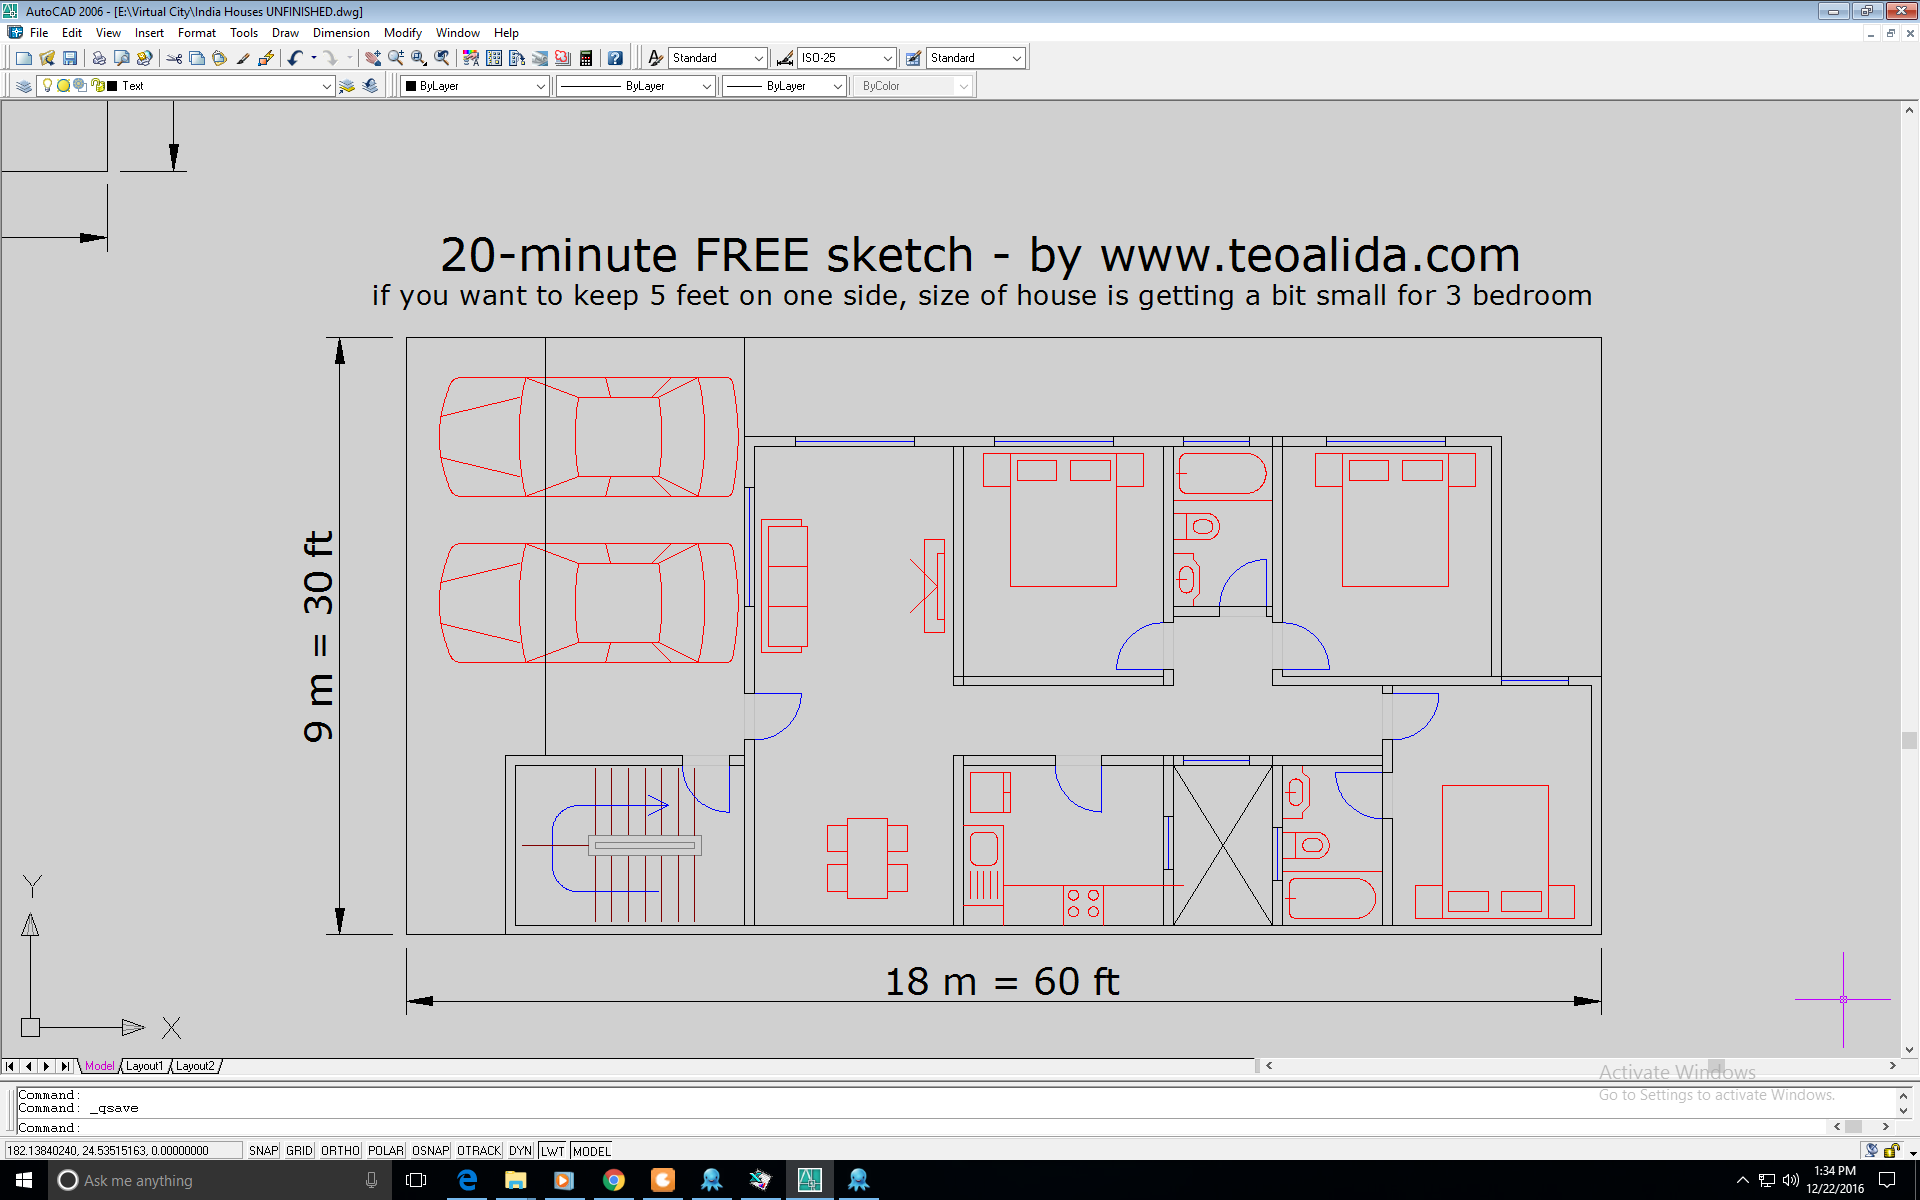 House floor plans 50-400 sqm designed by Teoalida | Teoalida ...